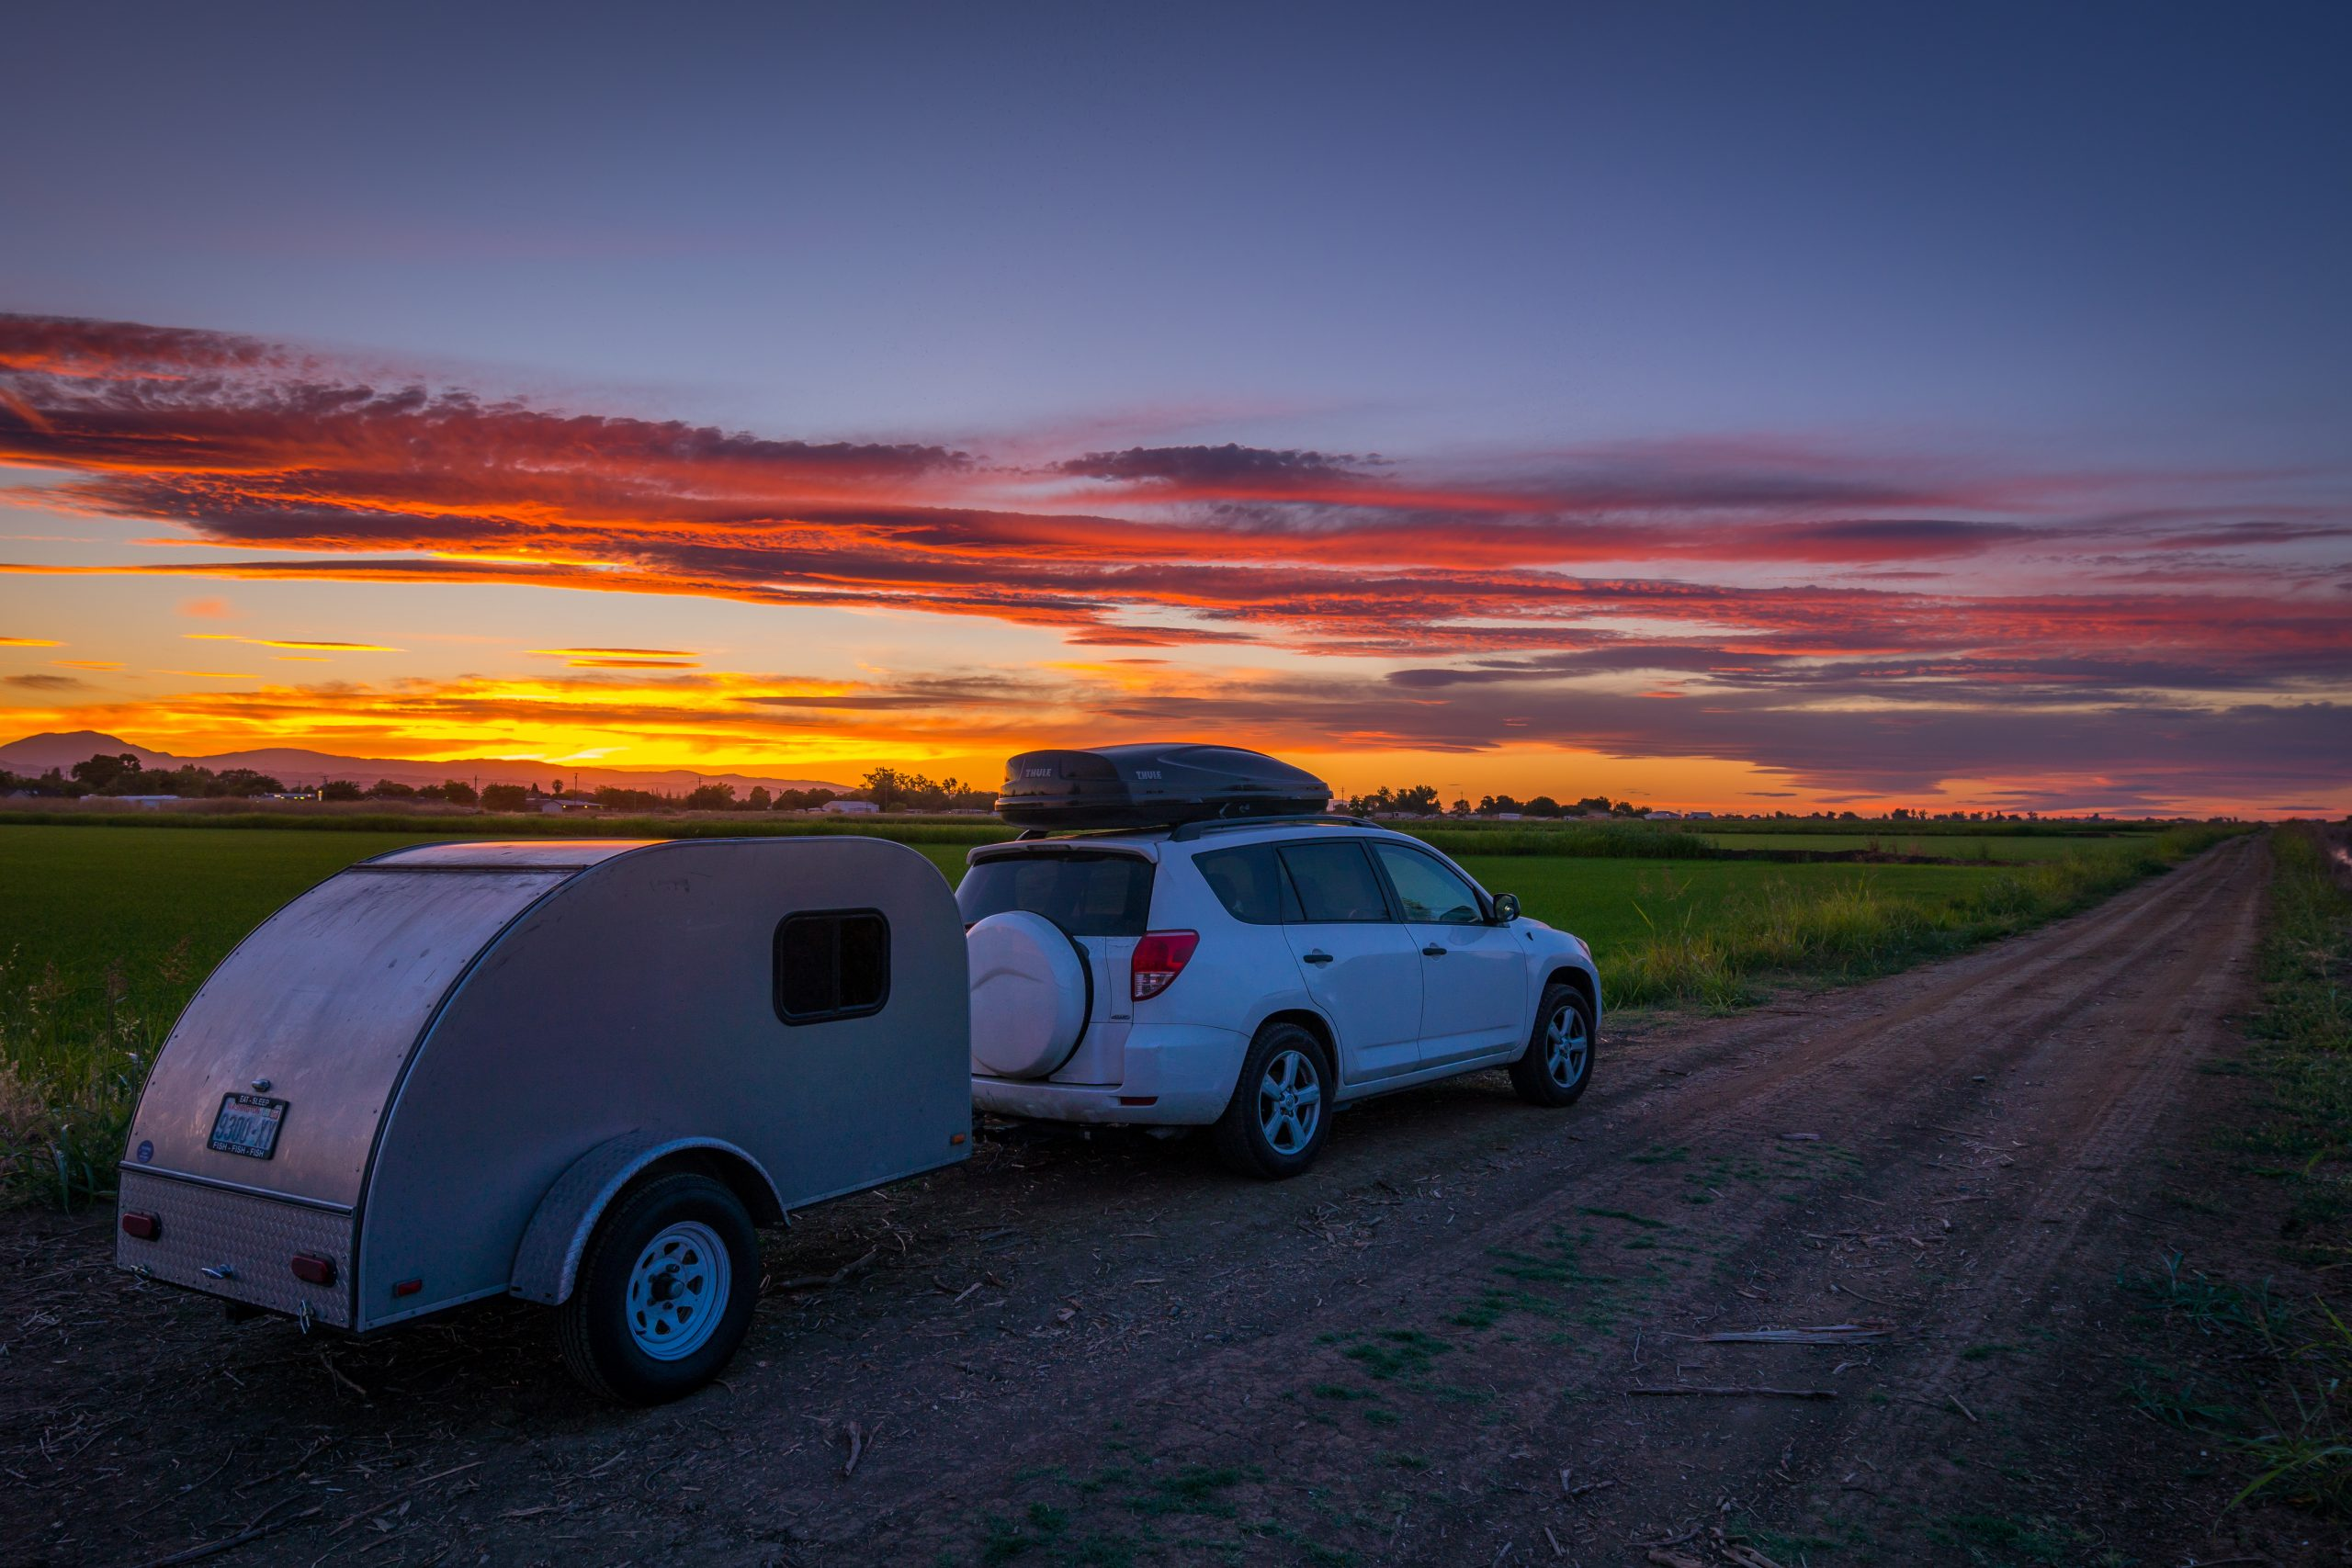 Towing Camper Sunset